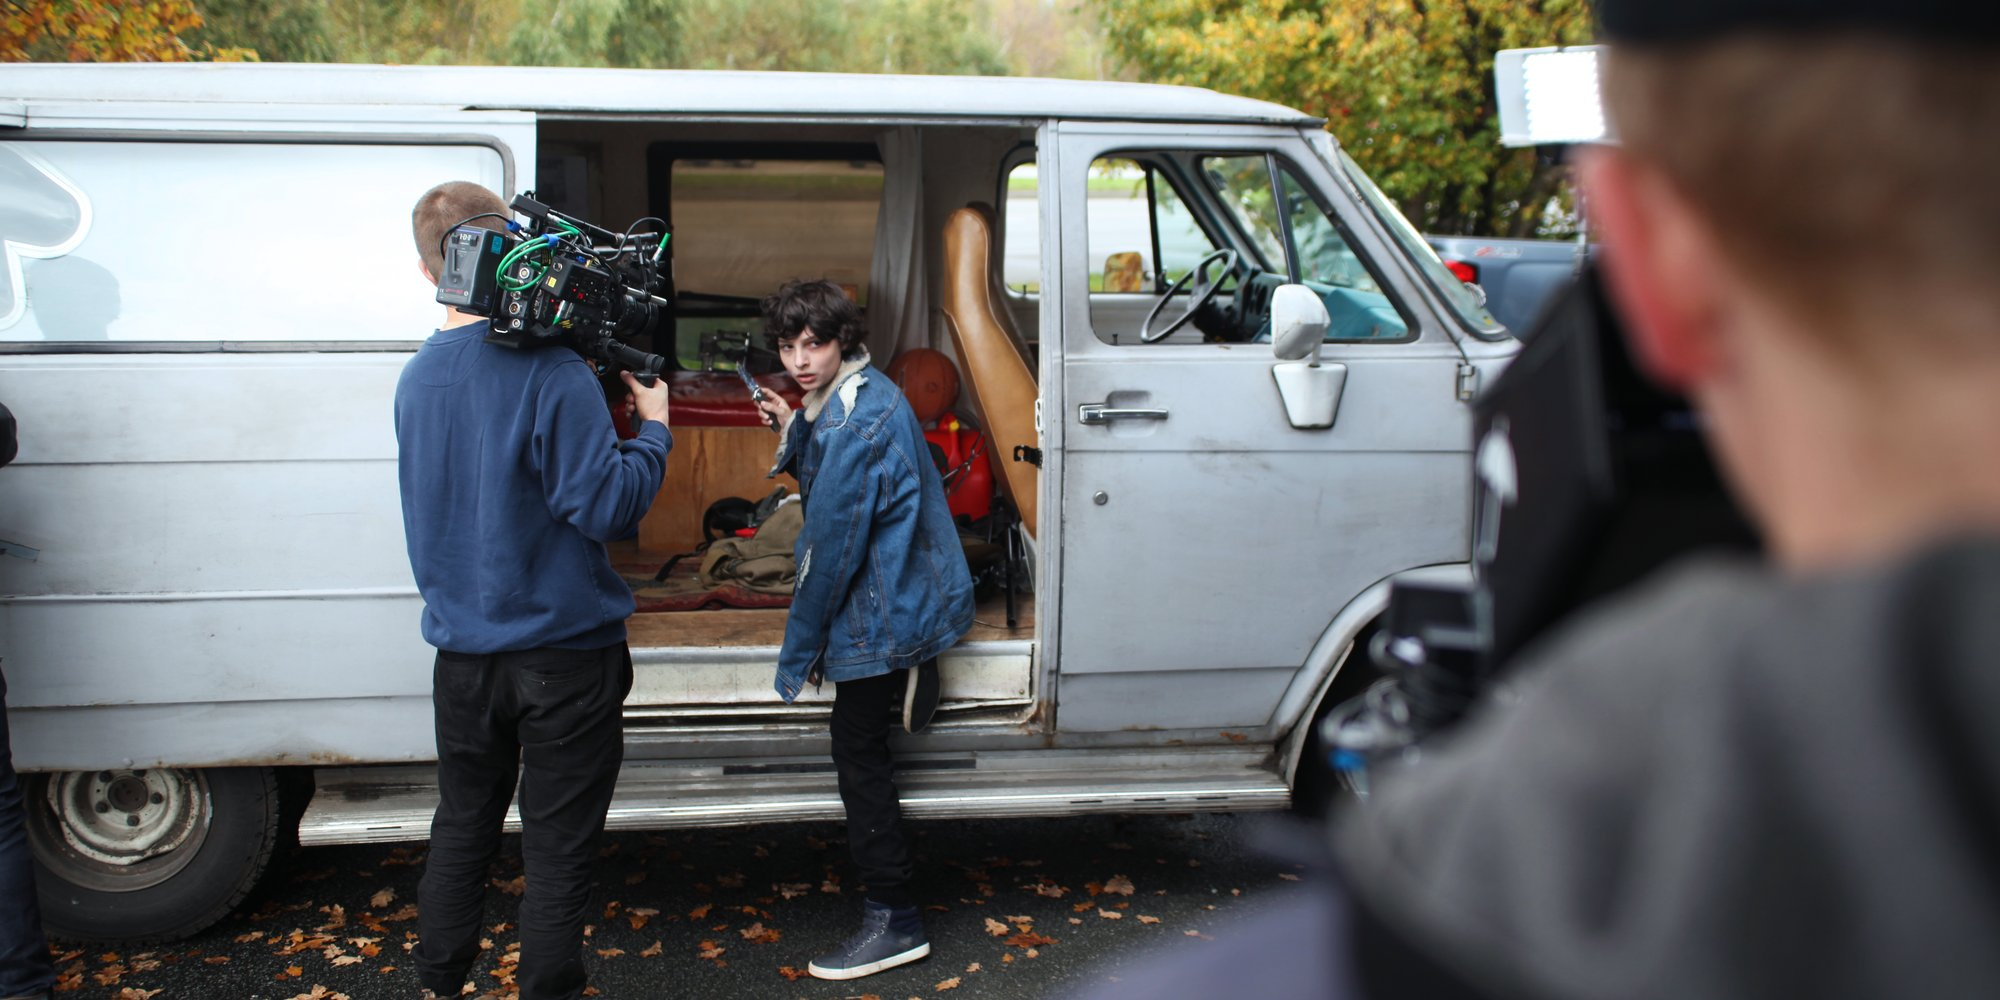 The van we used for this video didn't always start. And no, we didn't actually let the kids drive.